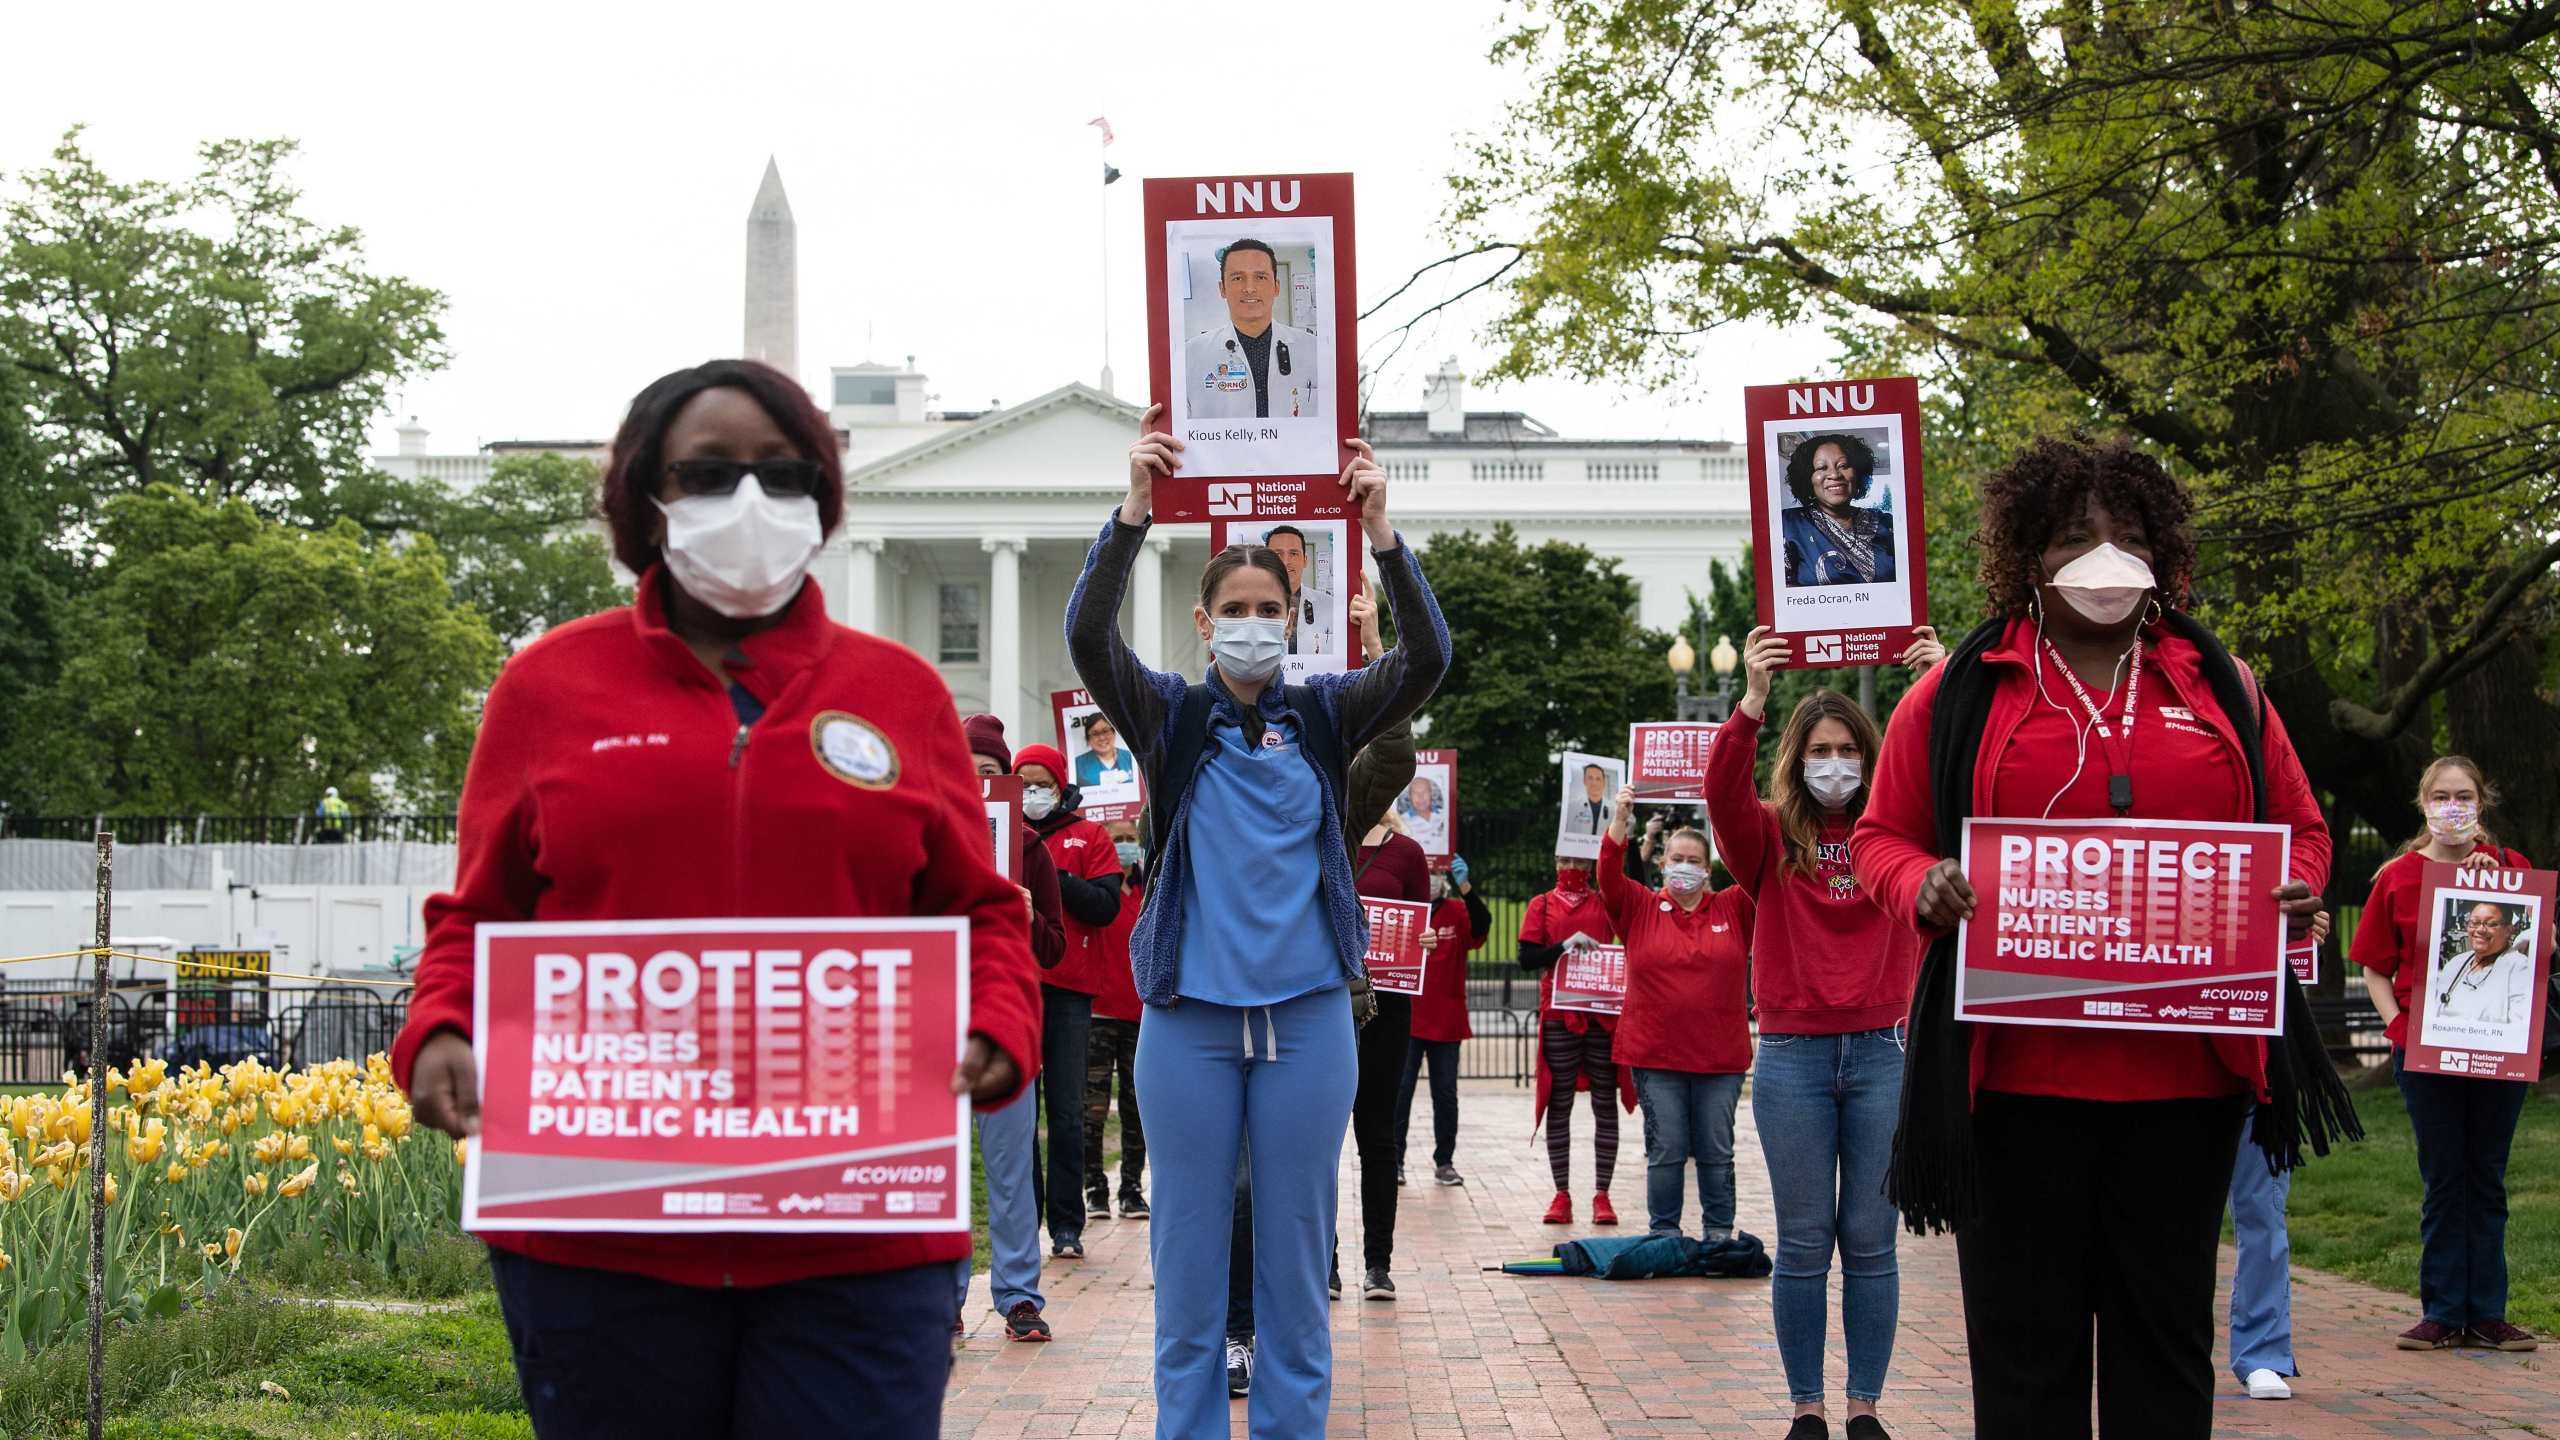 Nurses protest outside the White House against their lack of personal protection equipment on April 21, 2020. (Credit: NICHOLAS KAMM / AFP / Getty Images)